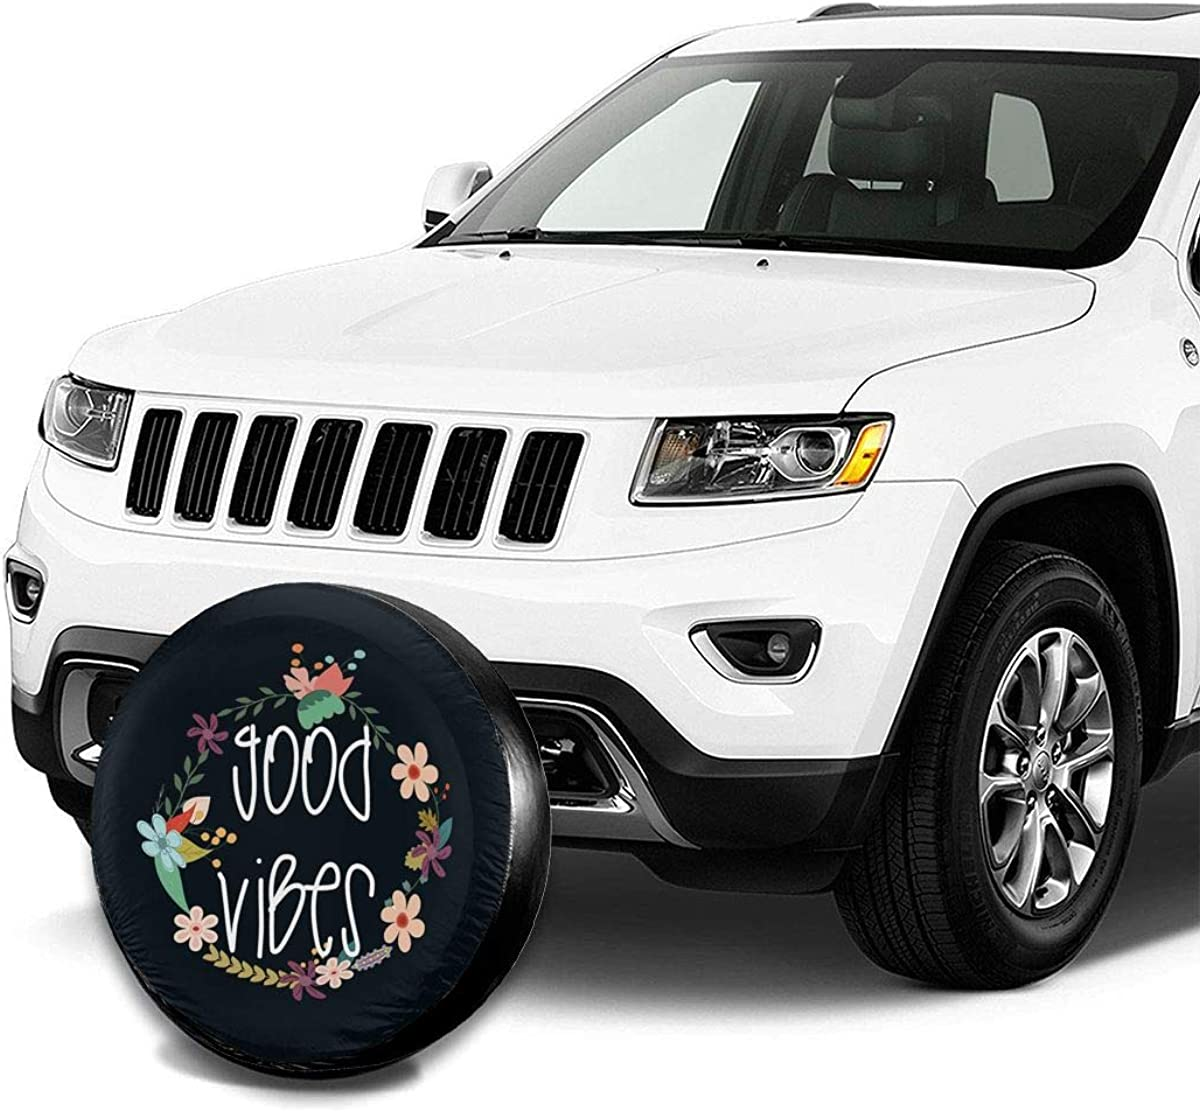 MSGUIDE Spare Tire Cover Good Vibes for Jeep Trailer Rv Truck 14 15 16 17 Inch Sunscreen Dustproof Corrosion Proof Wheel Cover